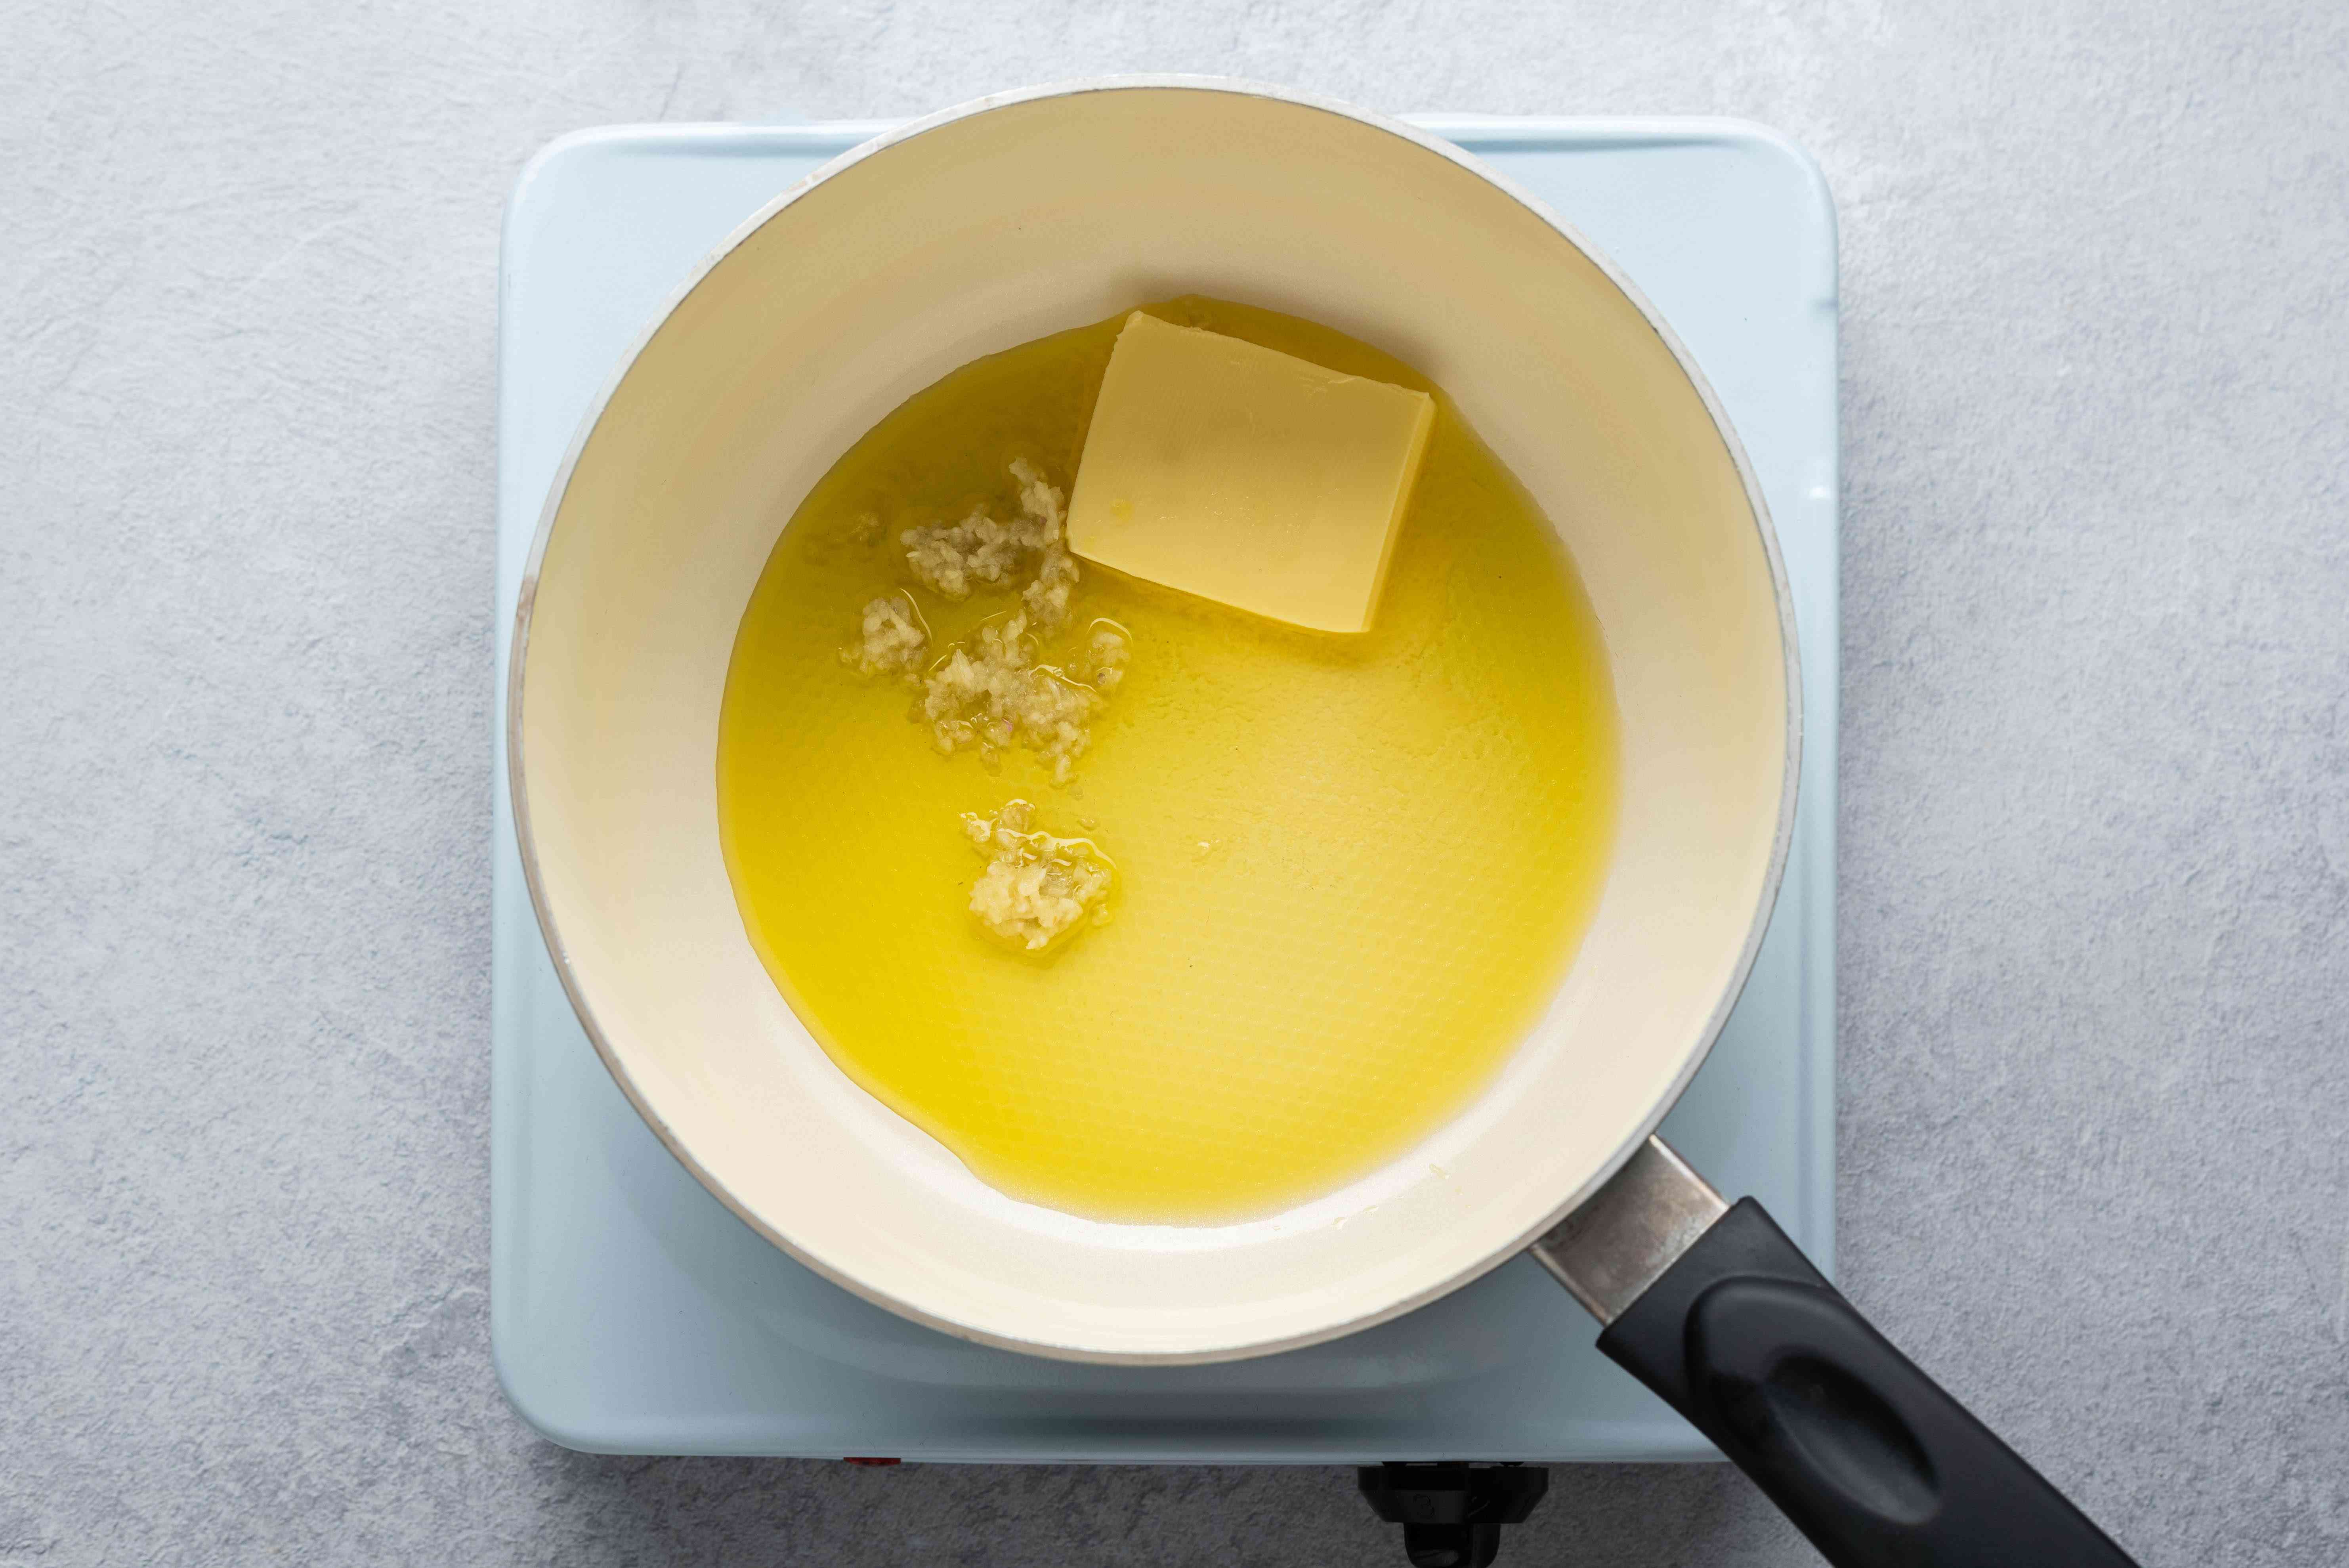 combine the butter, oil, and garlic in a pot